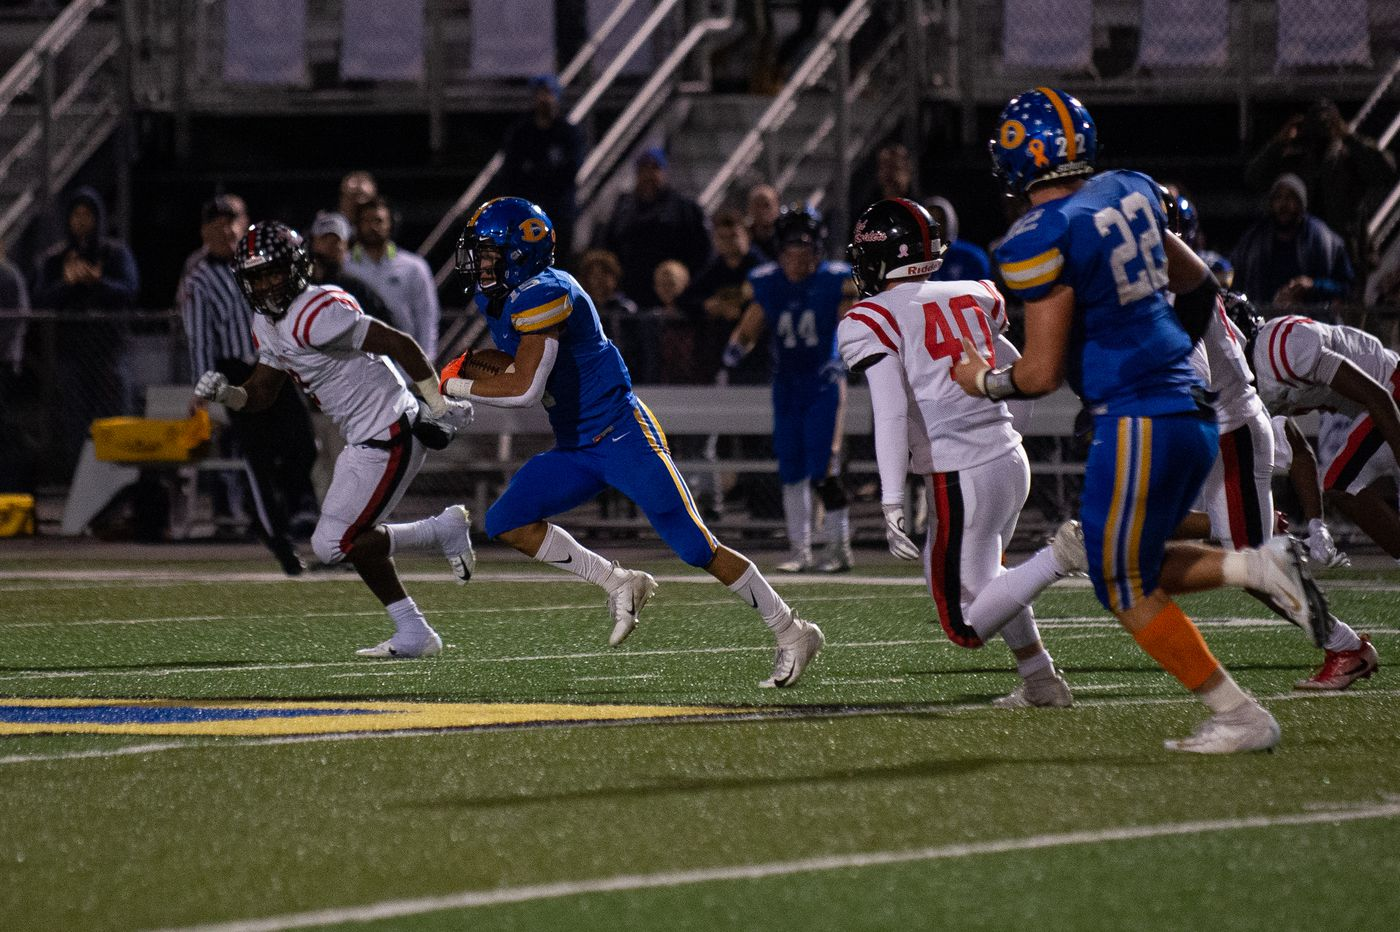 Football: Breaking down this weekend's playoff action in Southeastern Pa.